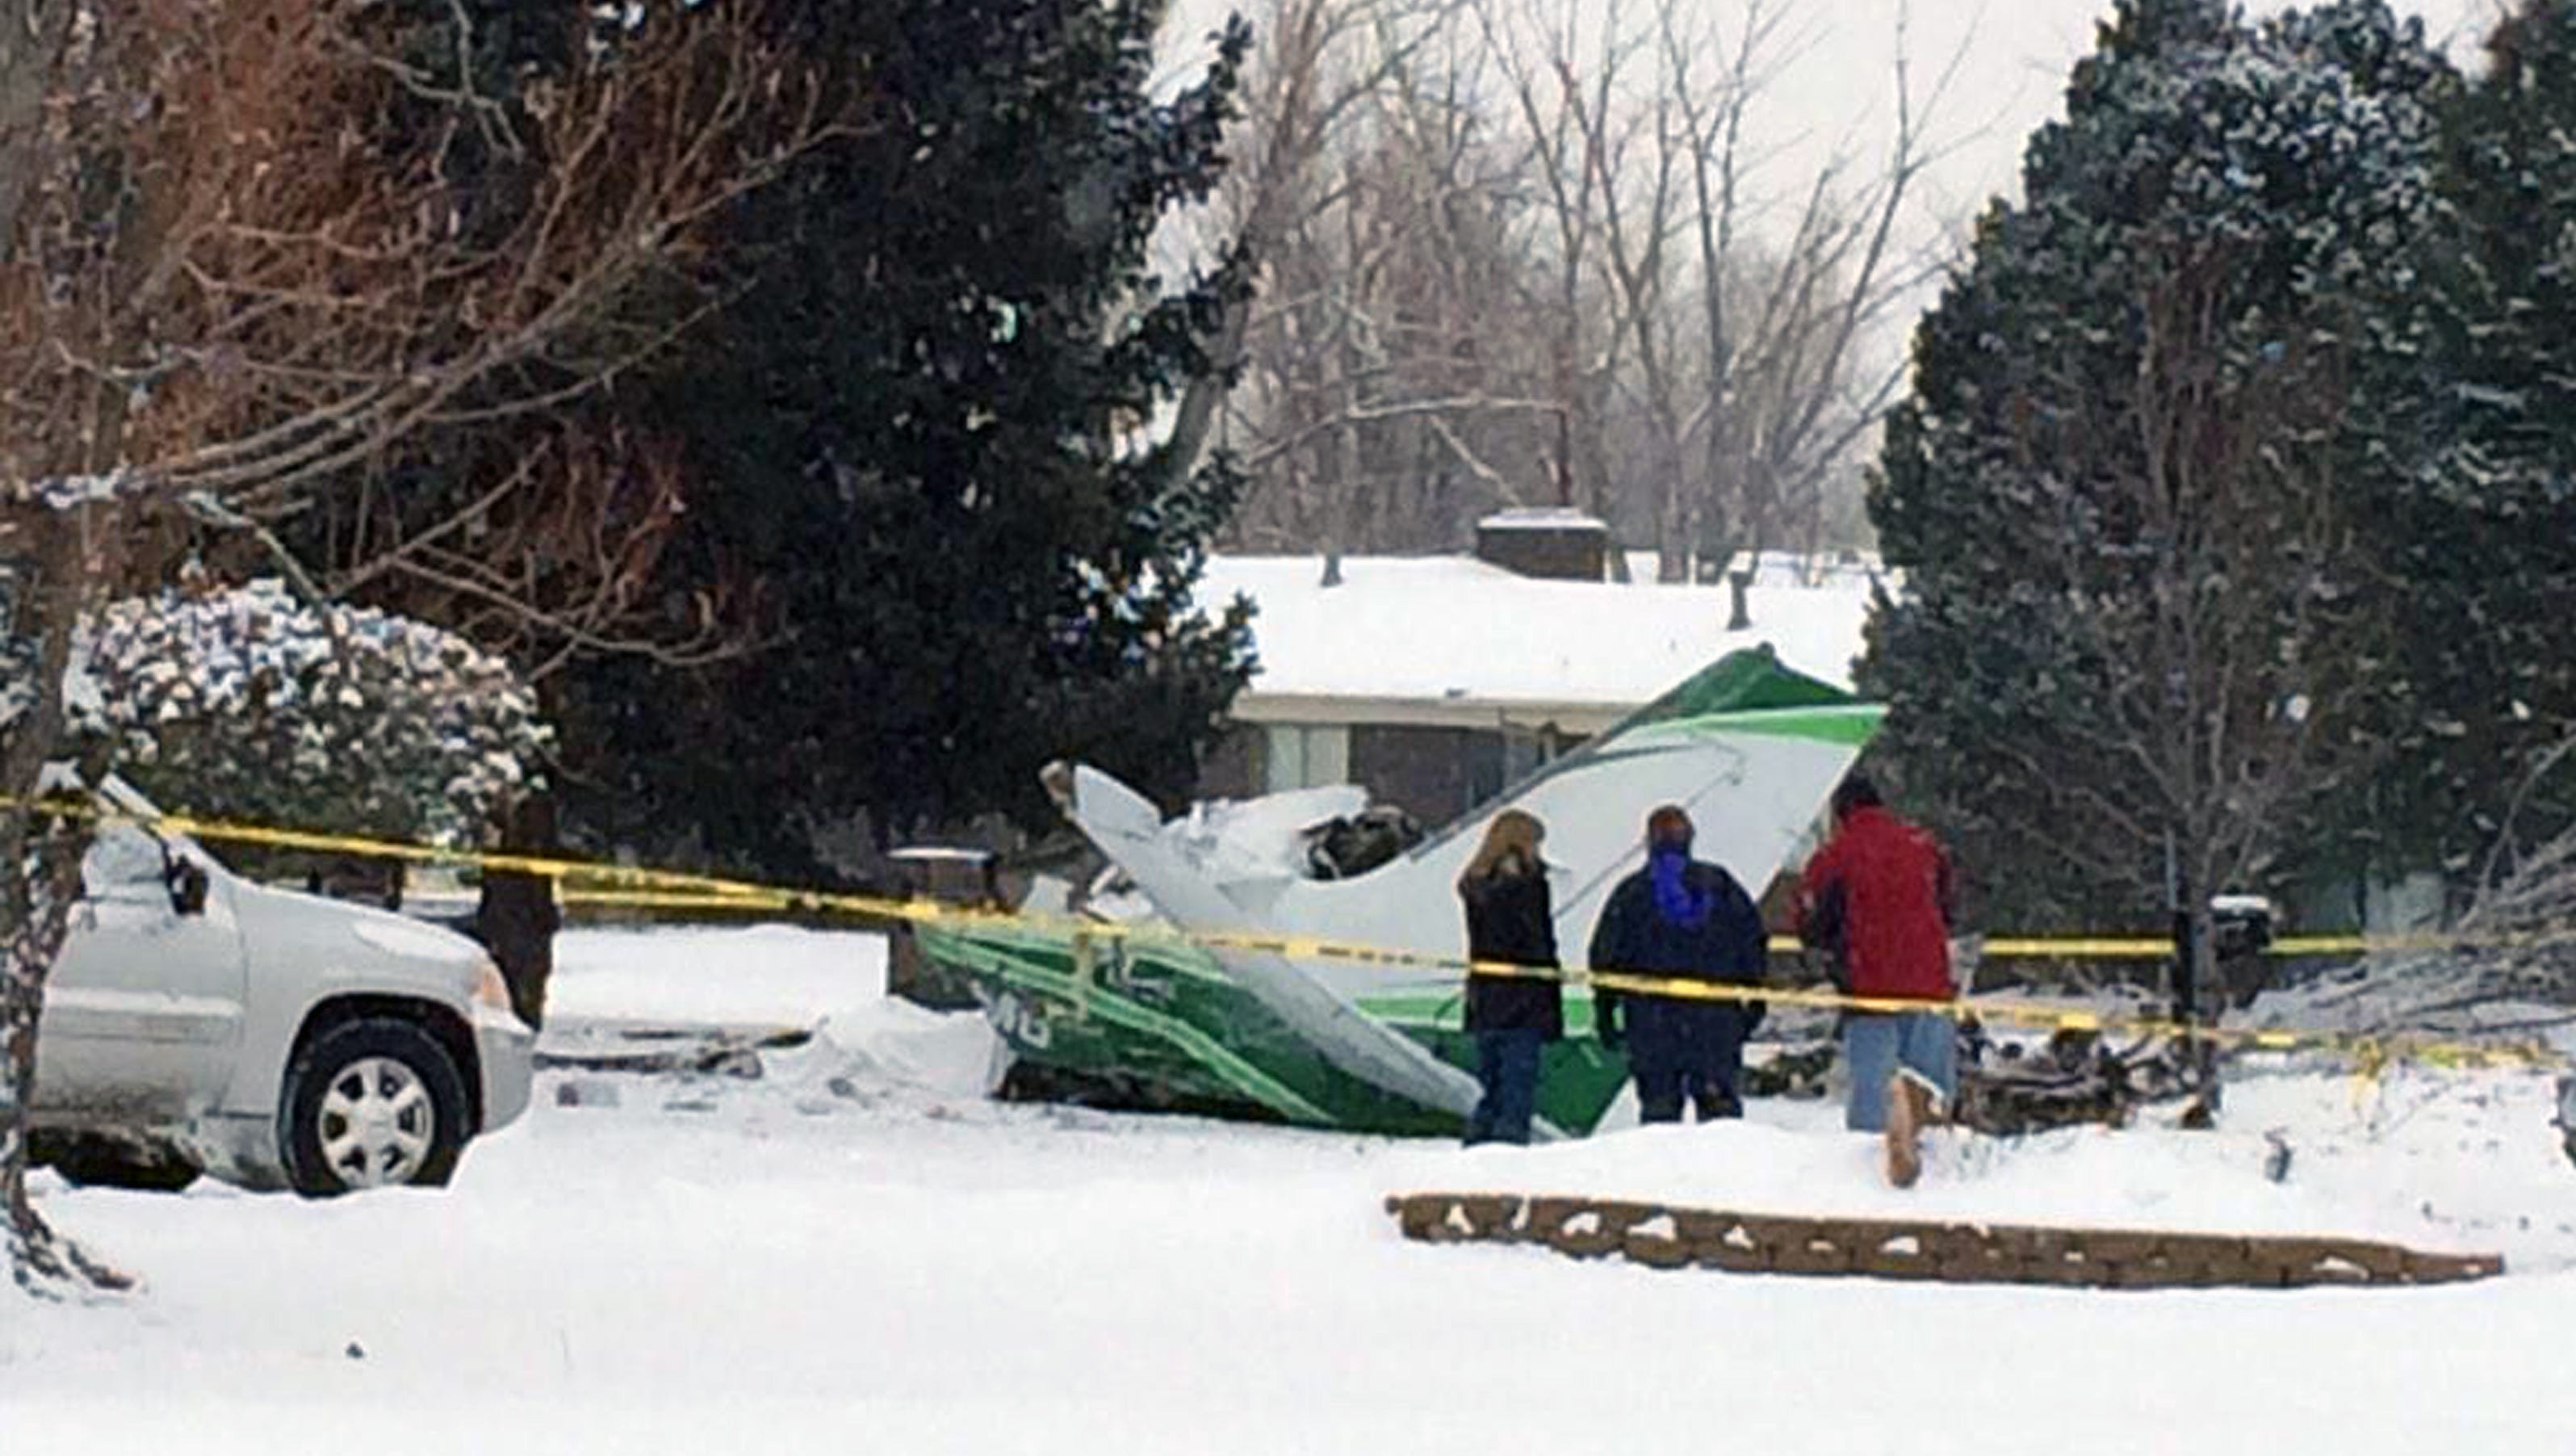 small plane crashes feet from home in colo killing pilot. Black Bedroom Furniture Sets. Home Design Ideas